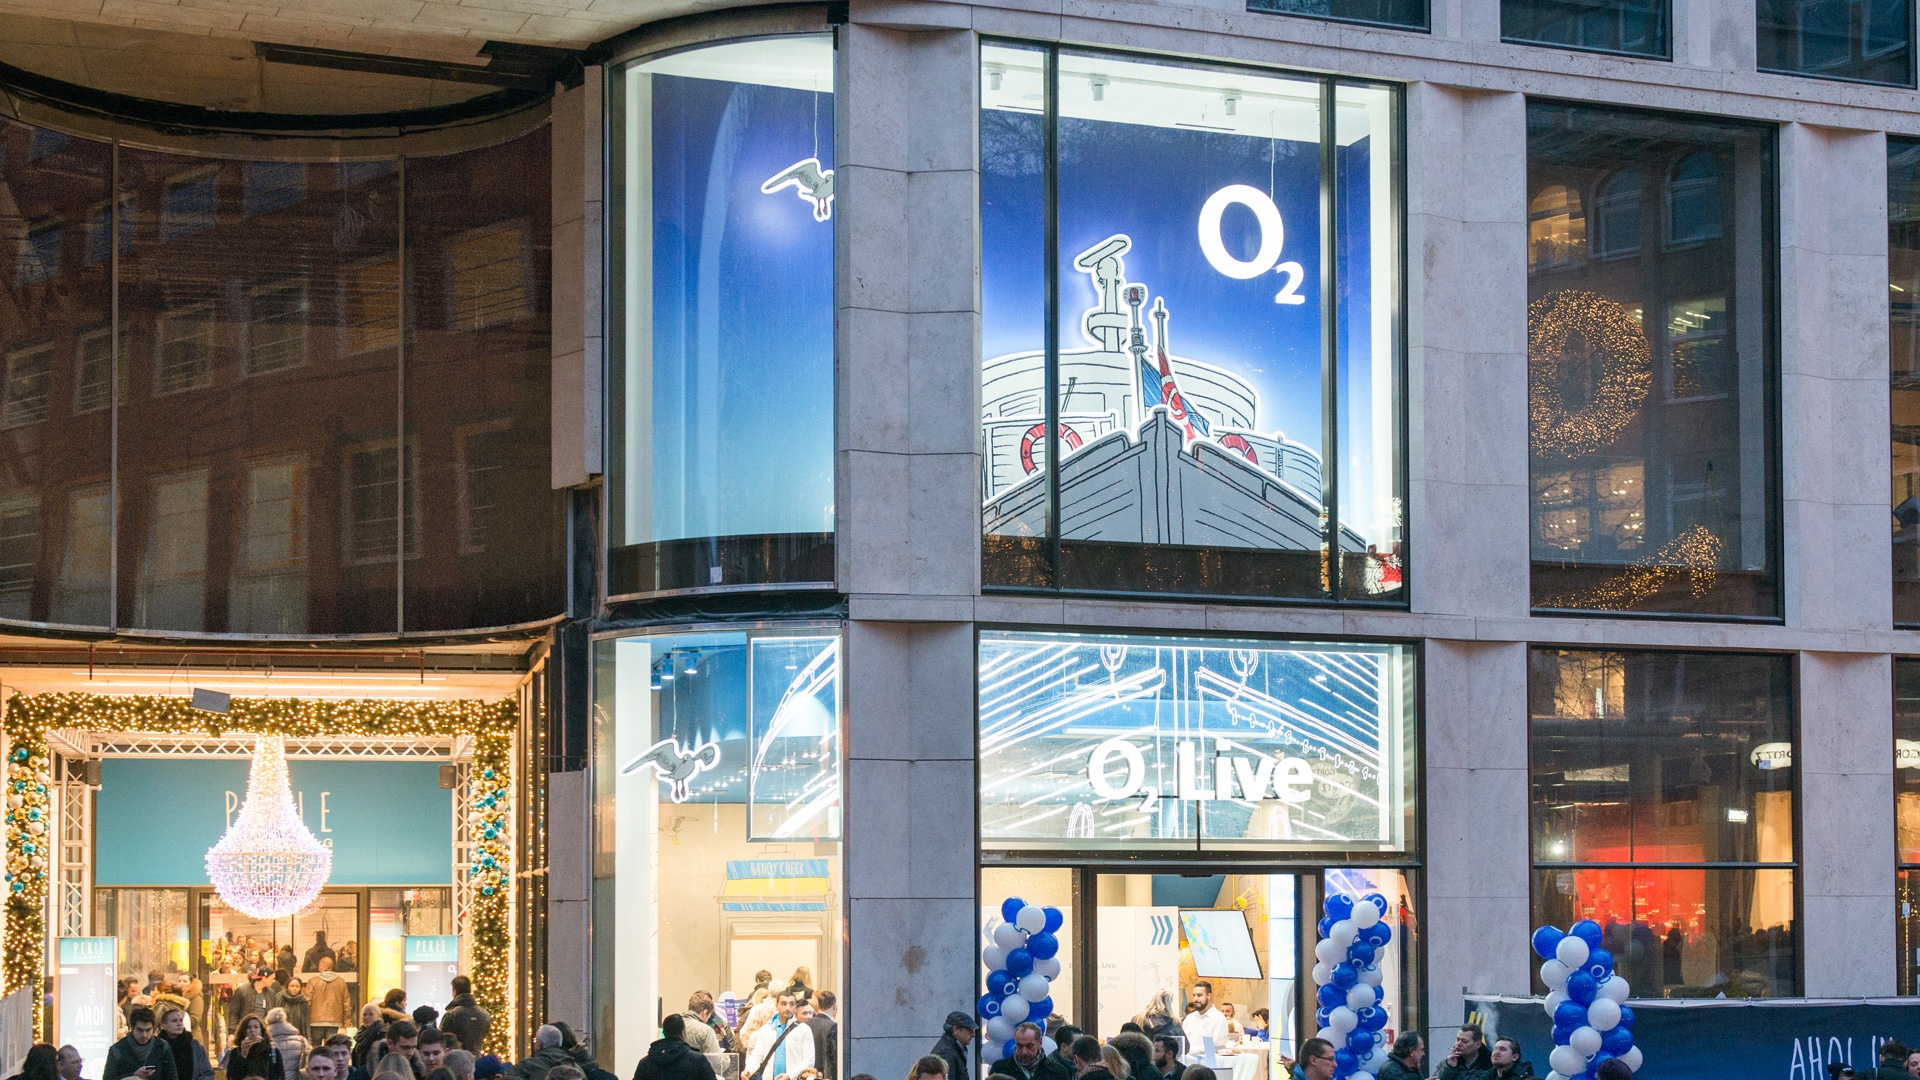 Openings o2 Live Stores